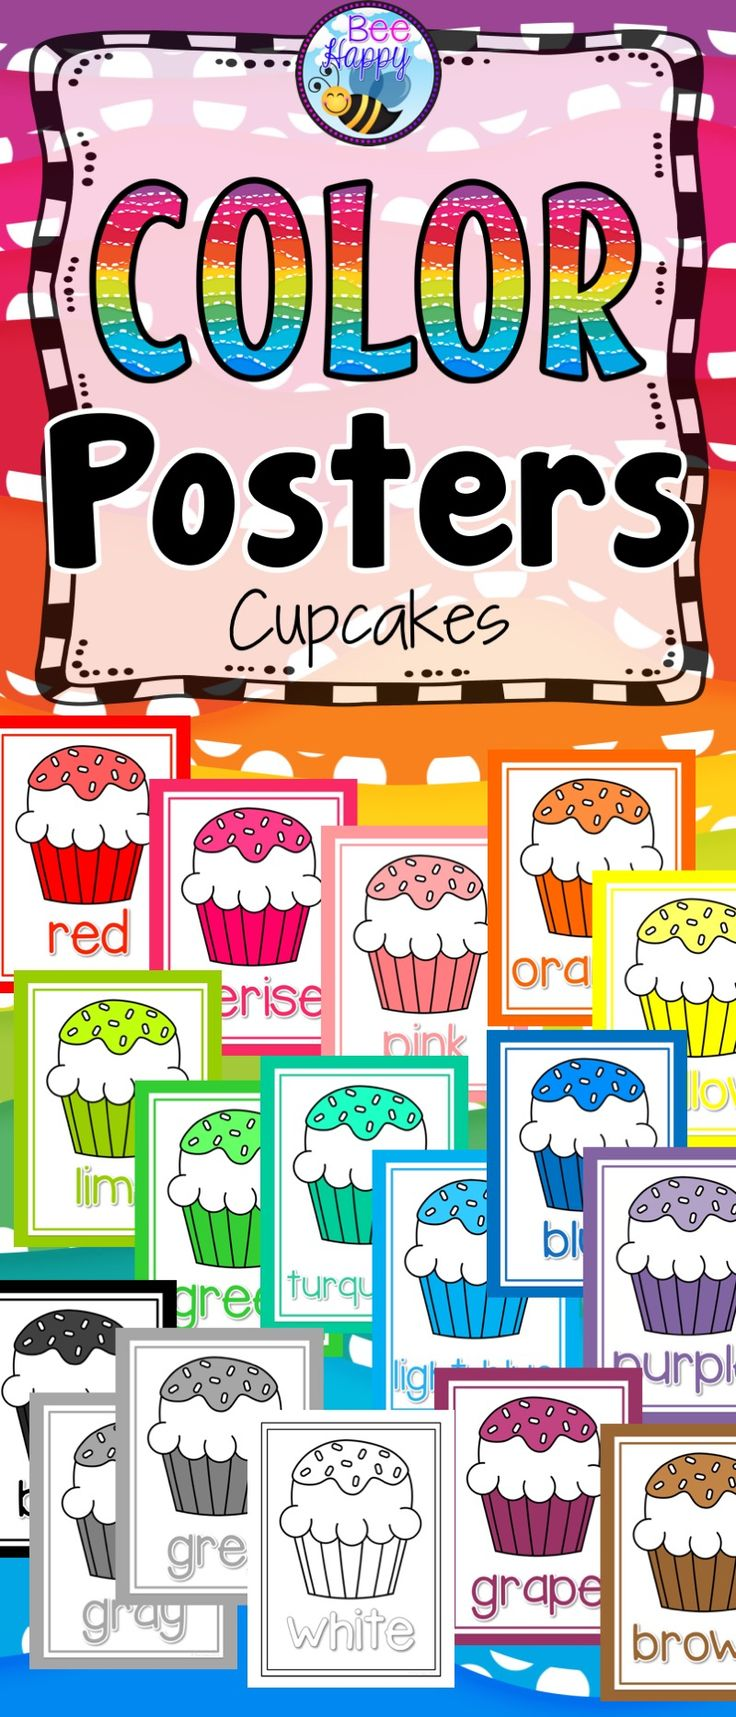 These bright, colorful posters are an essential addition to your classroom décor. They are a clear and simple reference for young learners starting to learn their colors or learning to read and write. Colors included: red, cerise, pink, orange, yellow, lime, green, turquoise, light blue, blue, purple, grape, brown, black gray/grey and white.